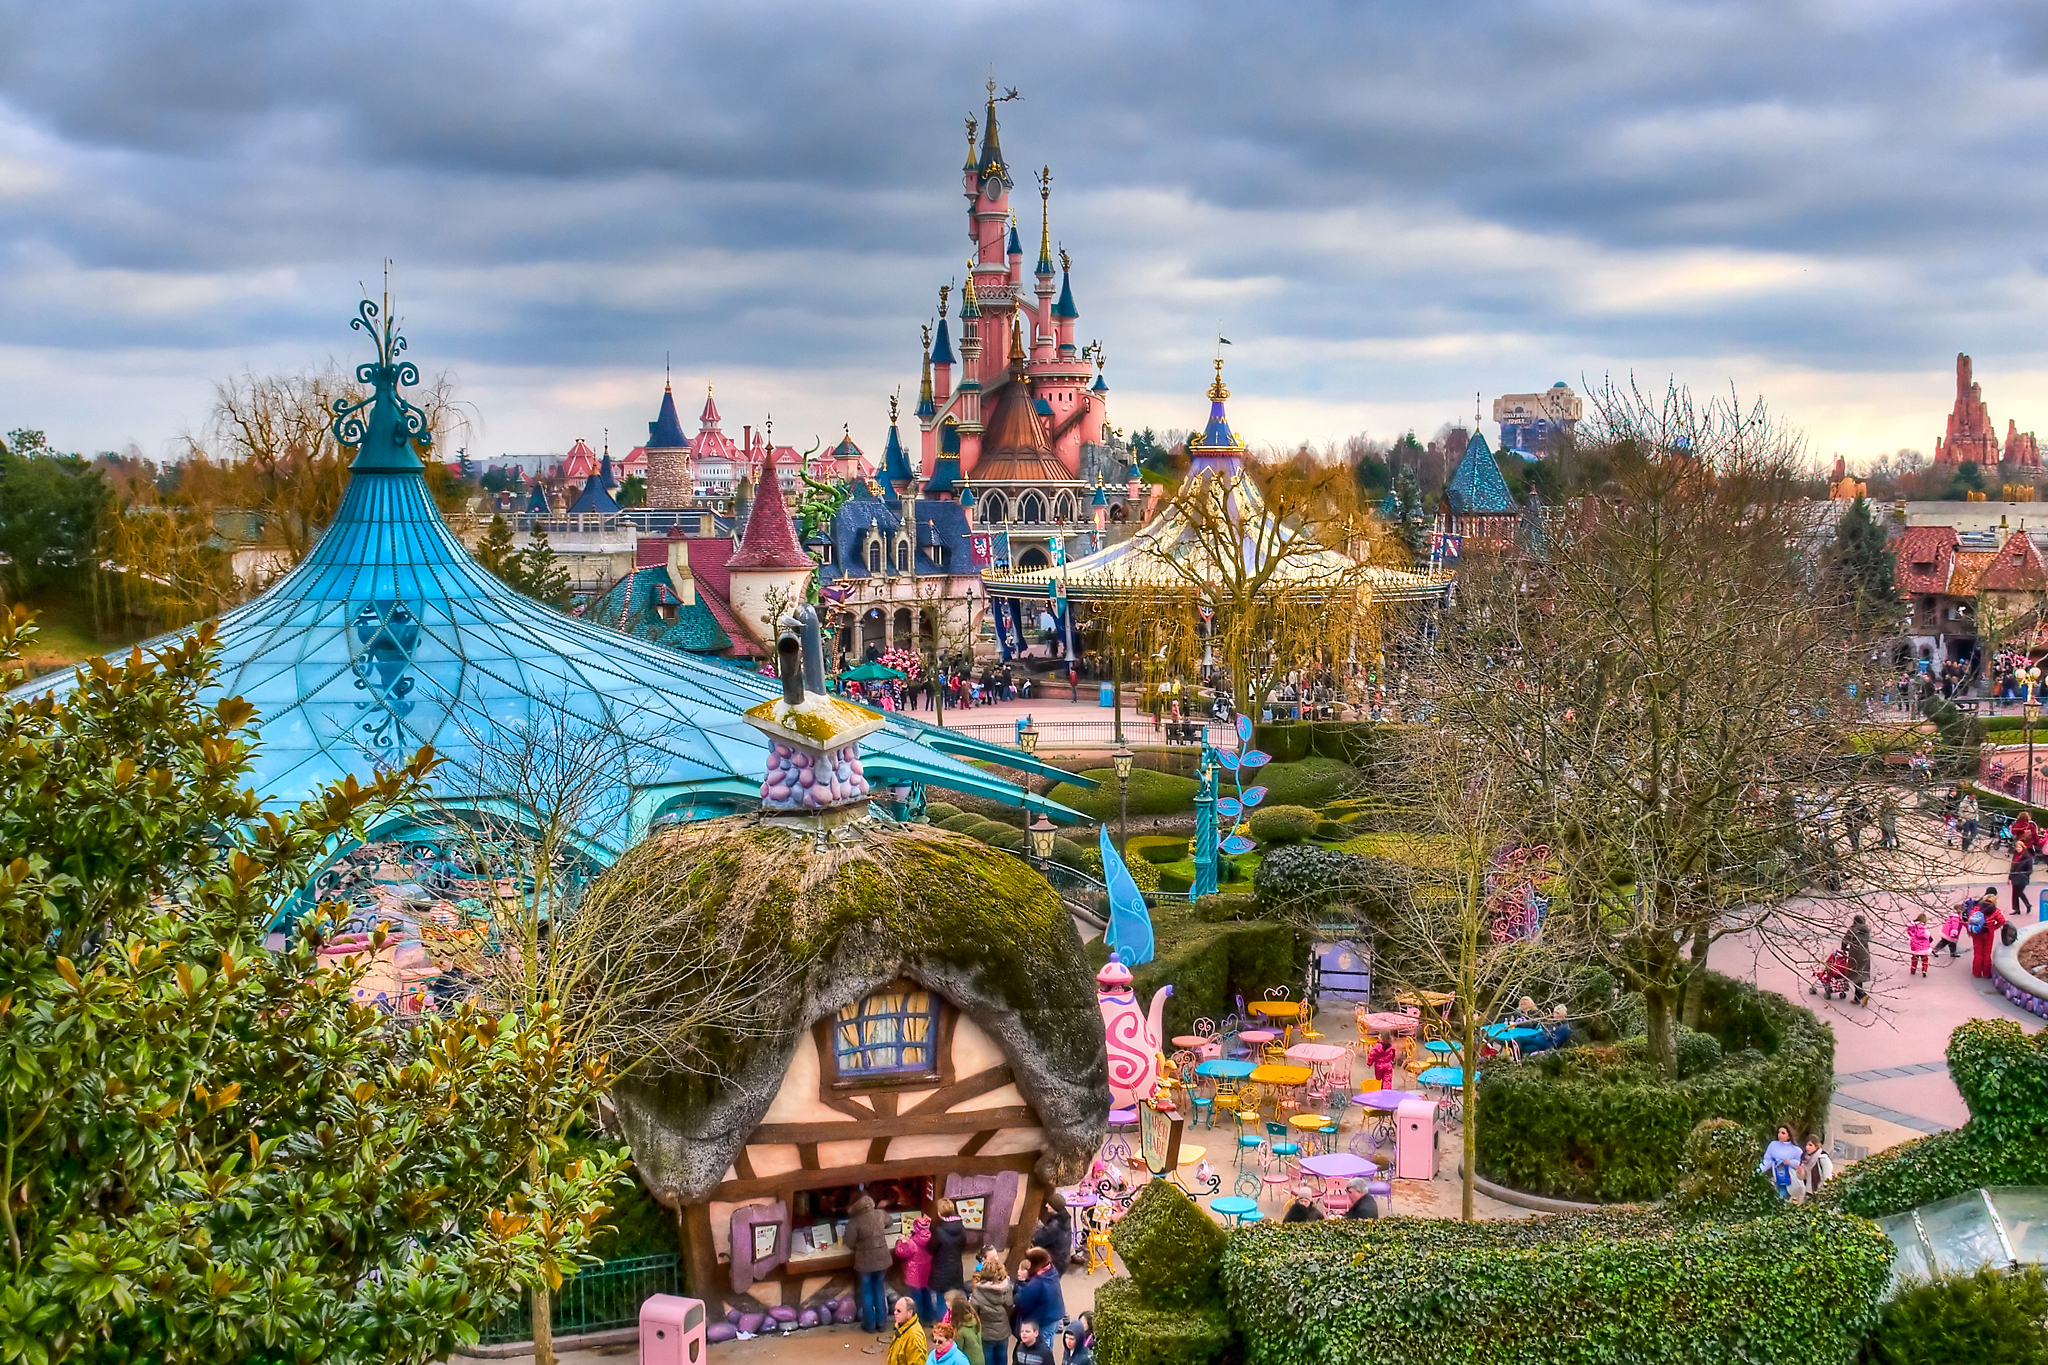 Net fs45 f 2009 138 8 e fantasyland disneyland paris by azerinn